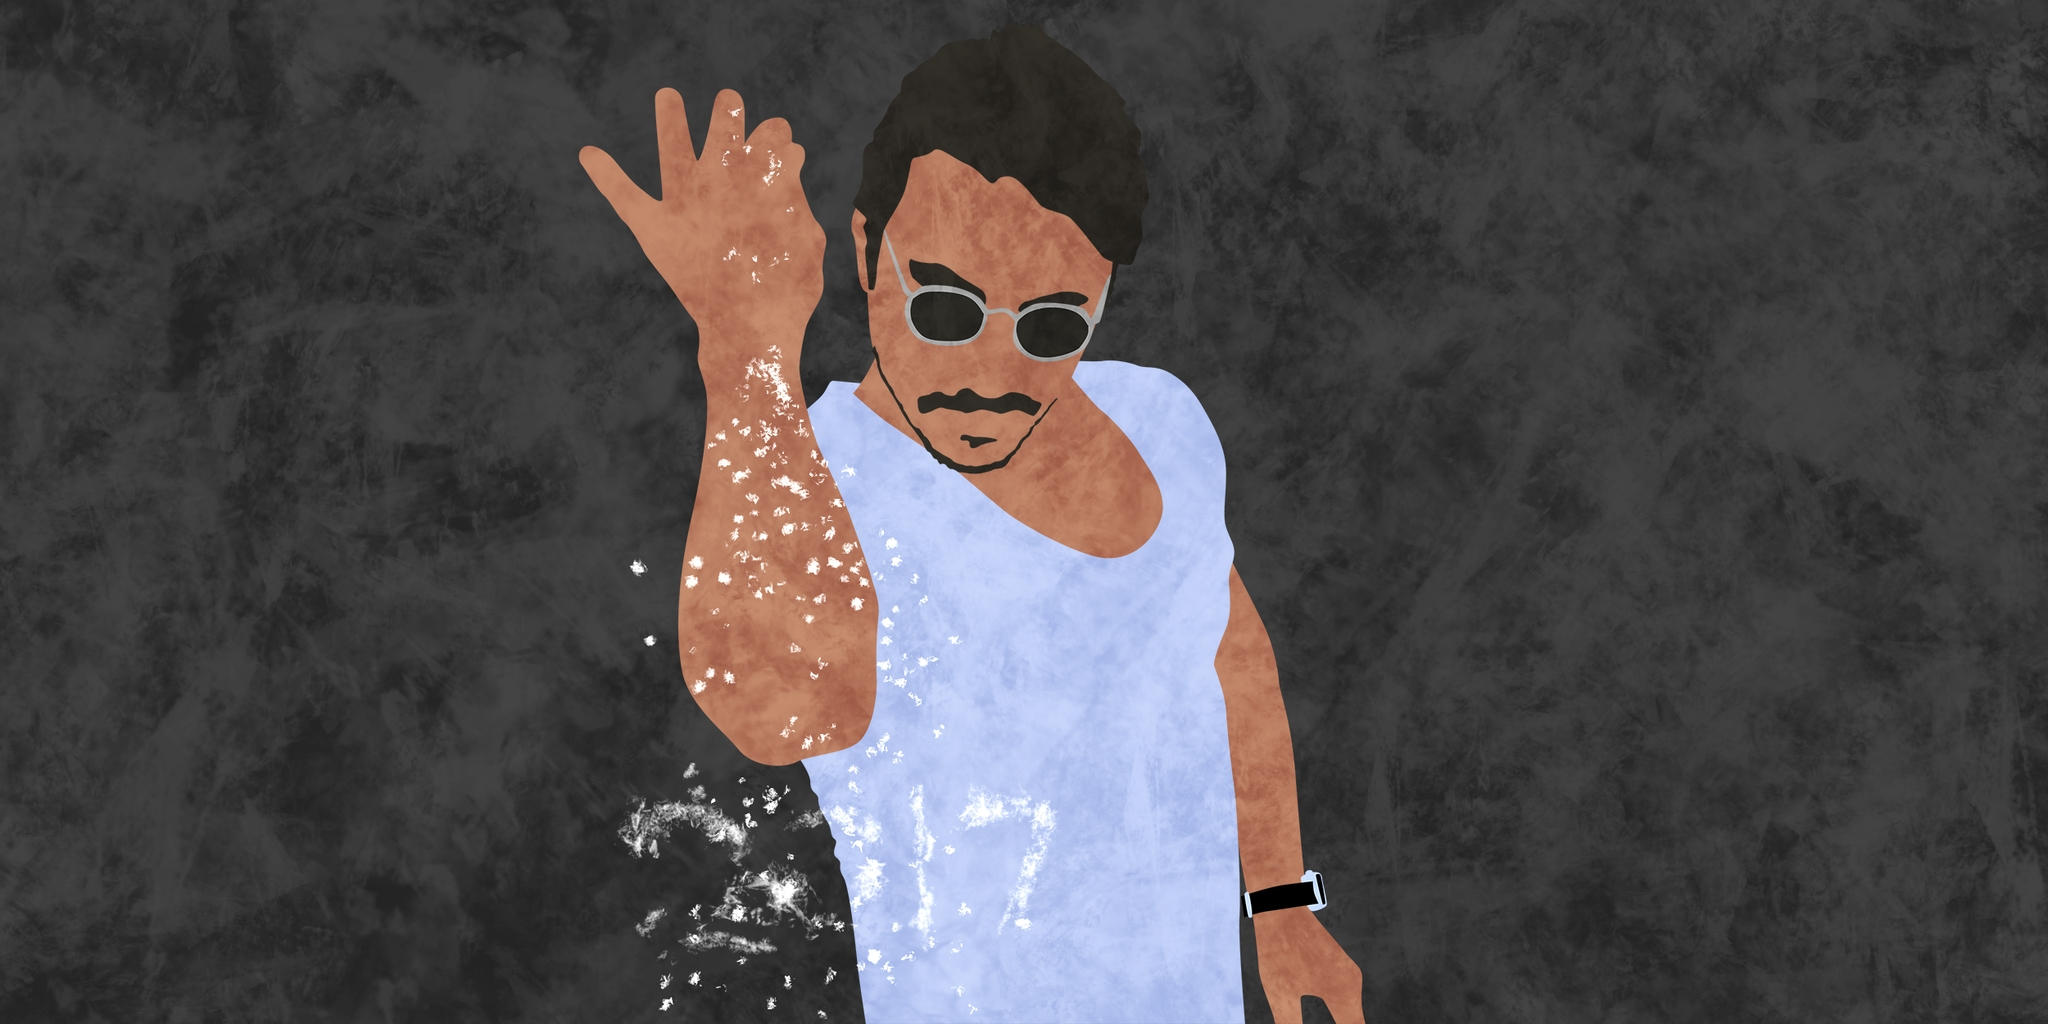 Salt Bae has descended from his saline perch to grace New York with his meats On Thursday the Turkish chef and living meme born Nusret Gökçe will